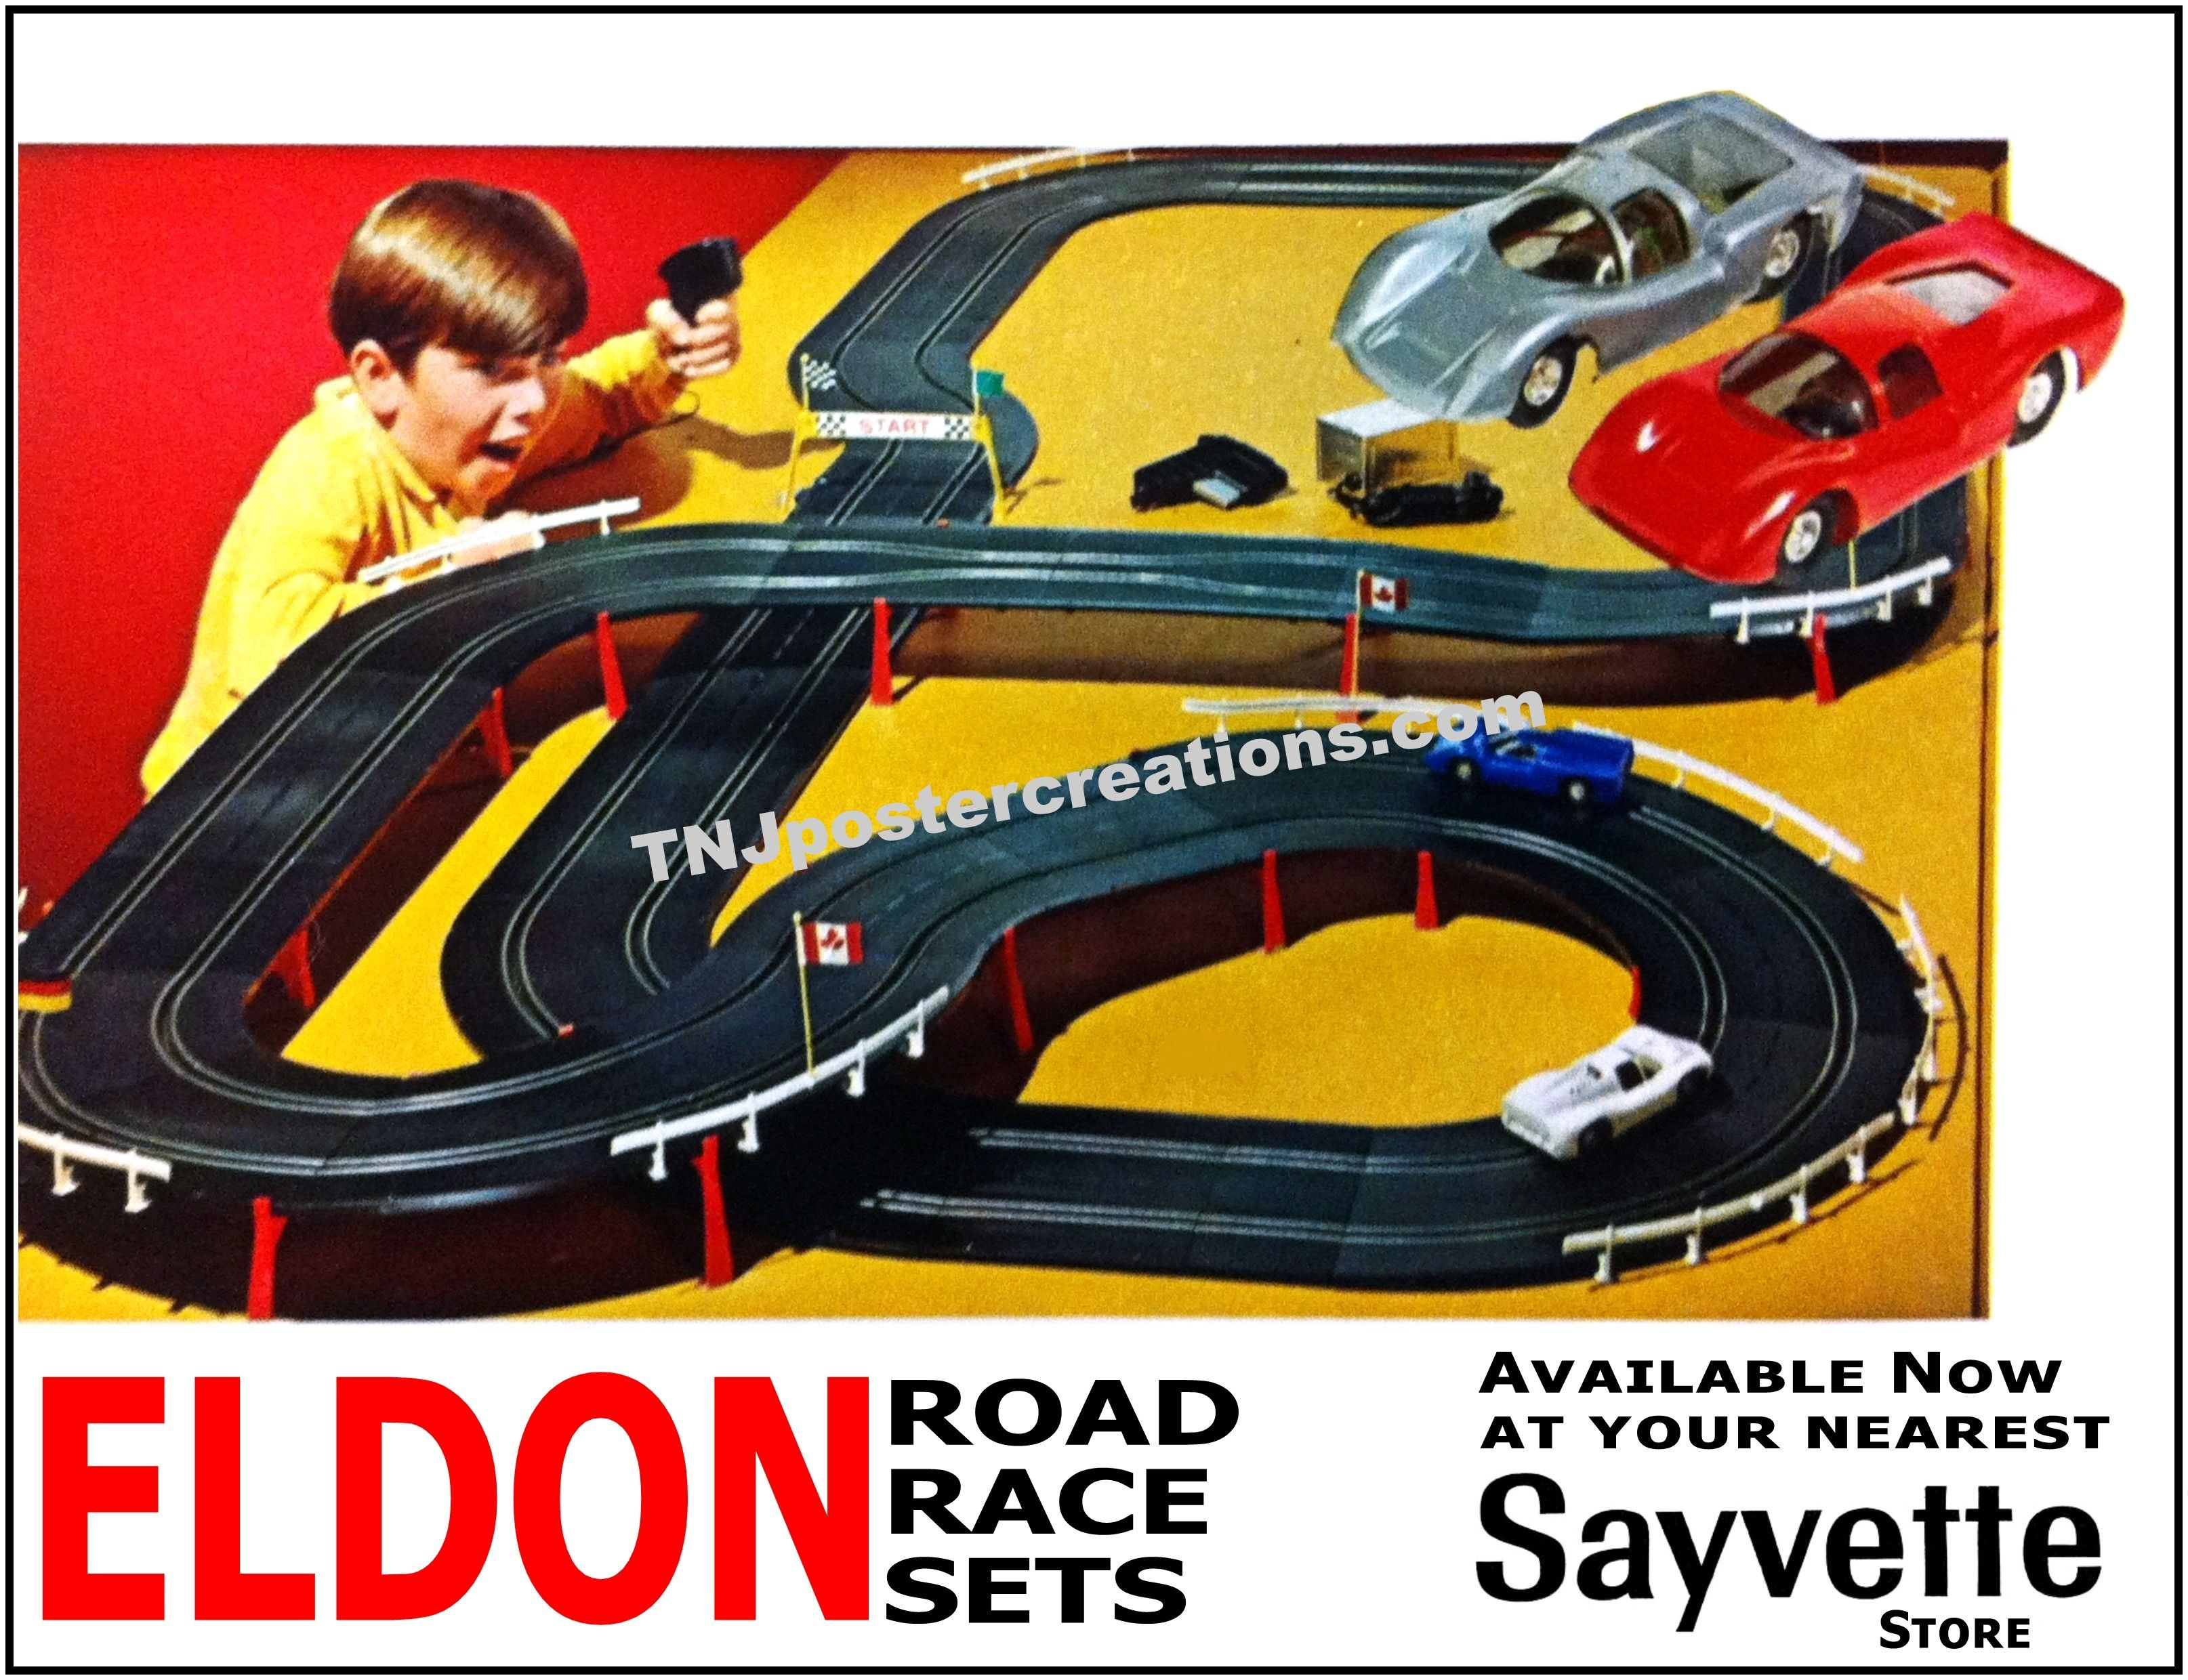 Eldon road race sets, available at Sayvette stores! Courtesy